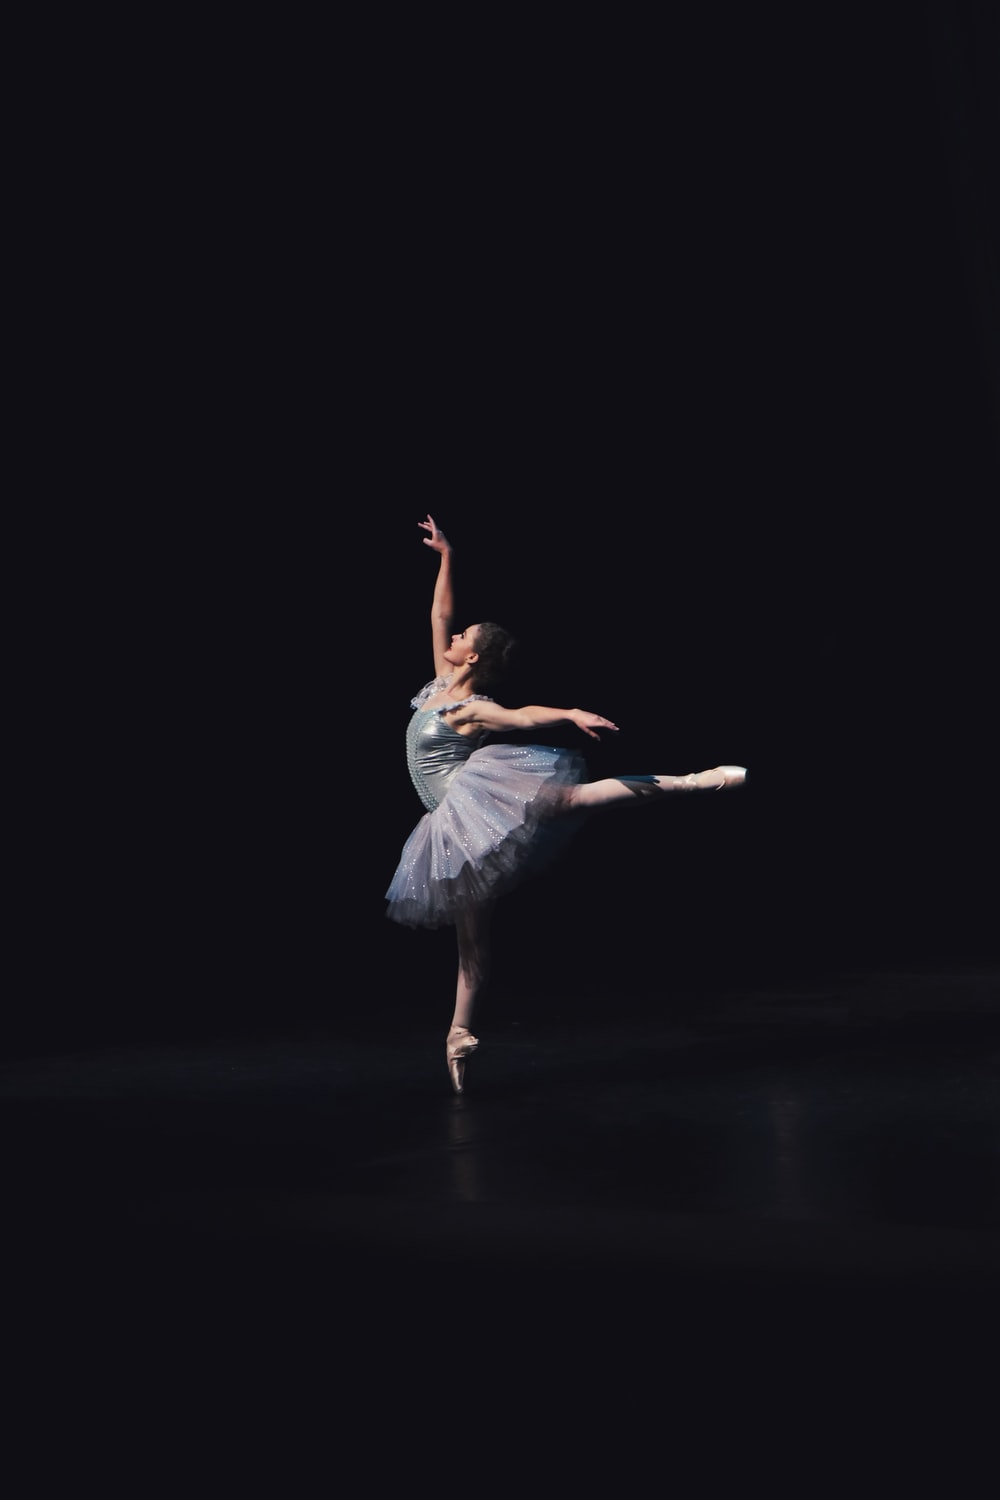 357da88fd 500+ Ballet Dancer Pictures  HD